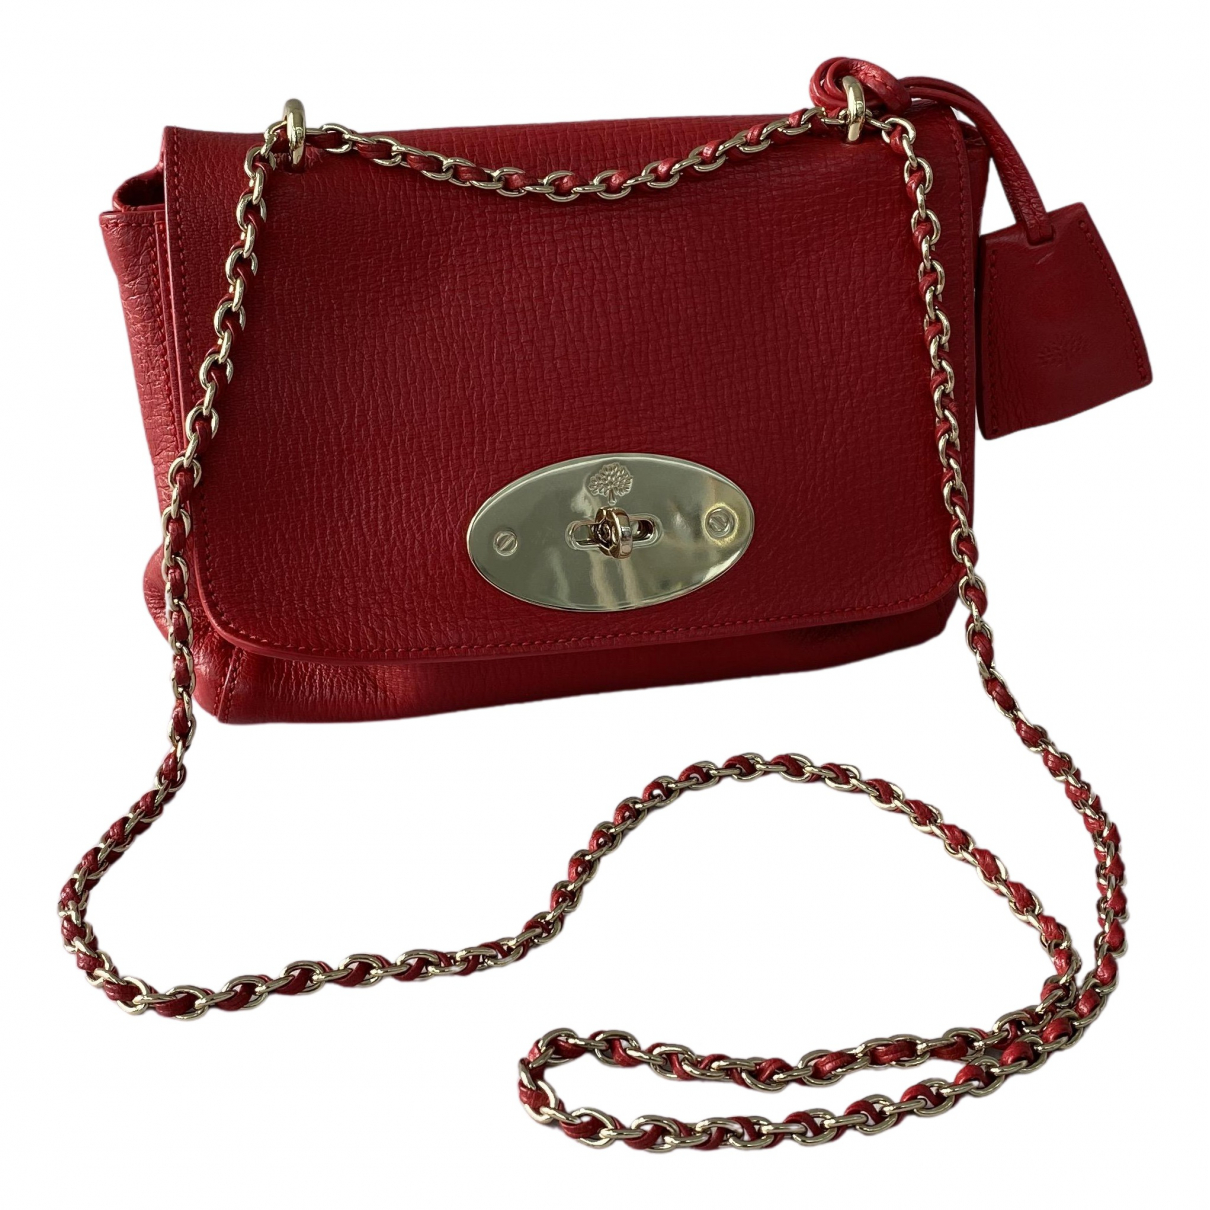 Mulberry Lily Handtasche in  Rot Leder